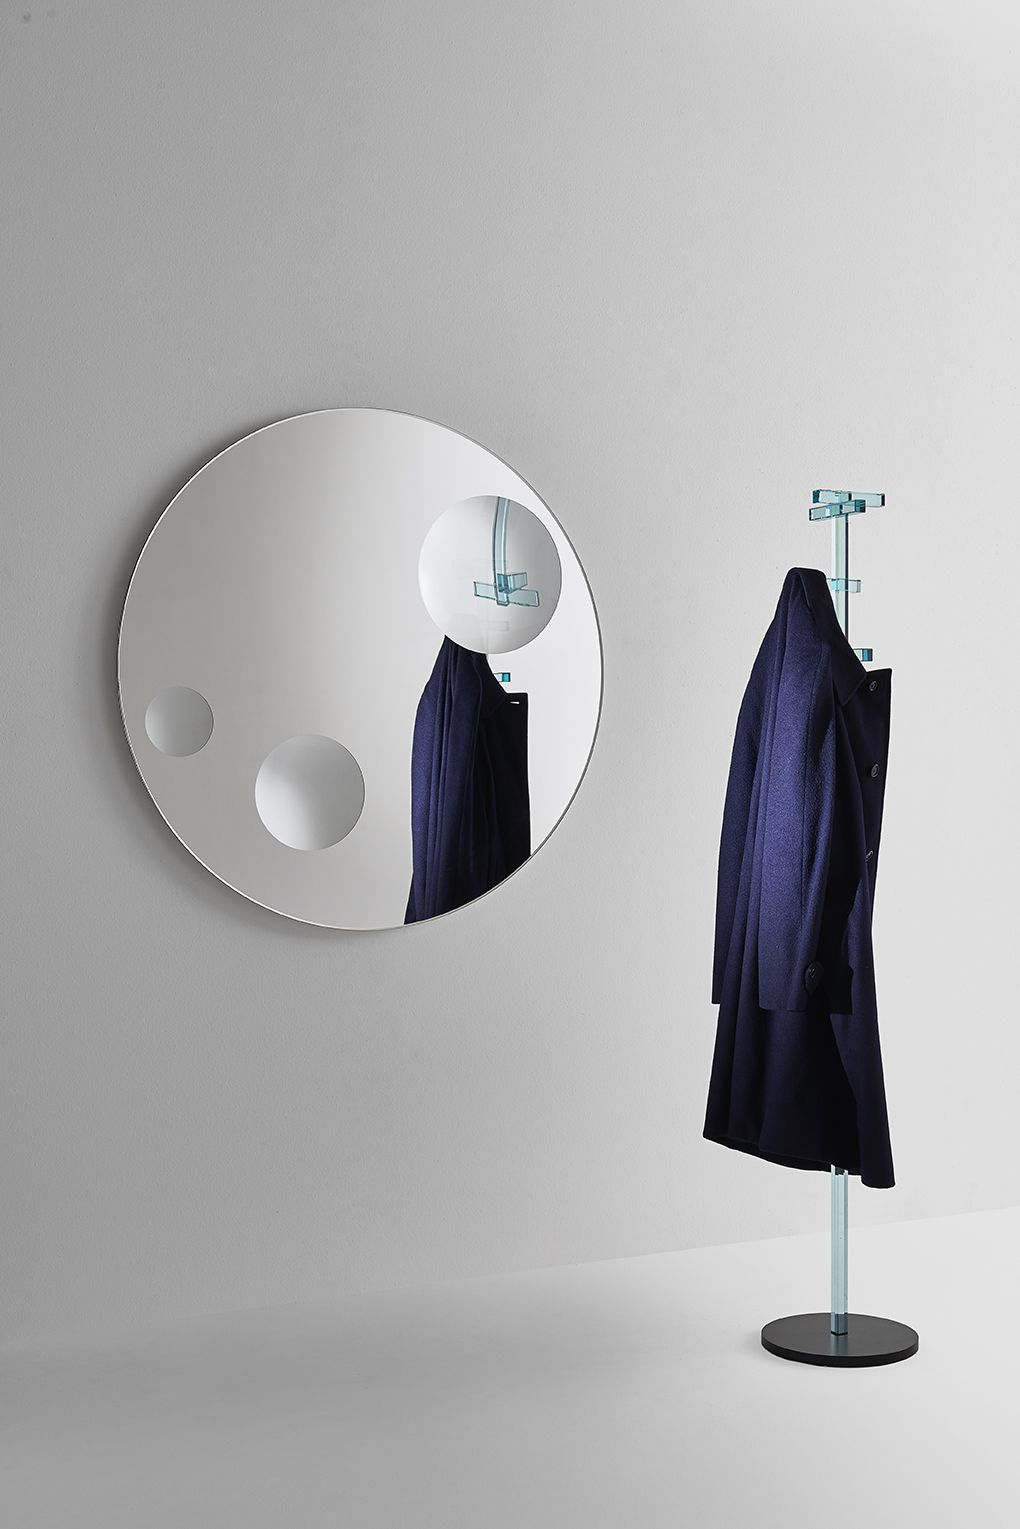 The Mirror Assumes A Magnetic Aspect Creating Surreal Effects Thanks To Three Magnifying Portholes Fixed On Flat Surface With